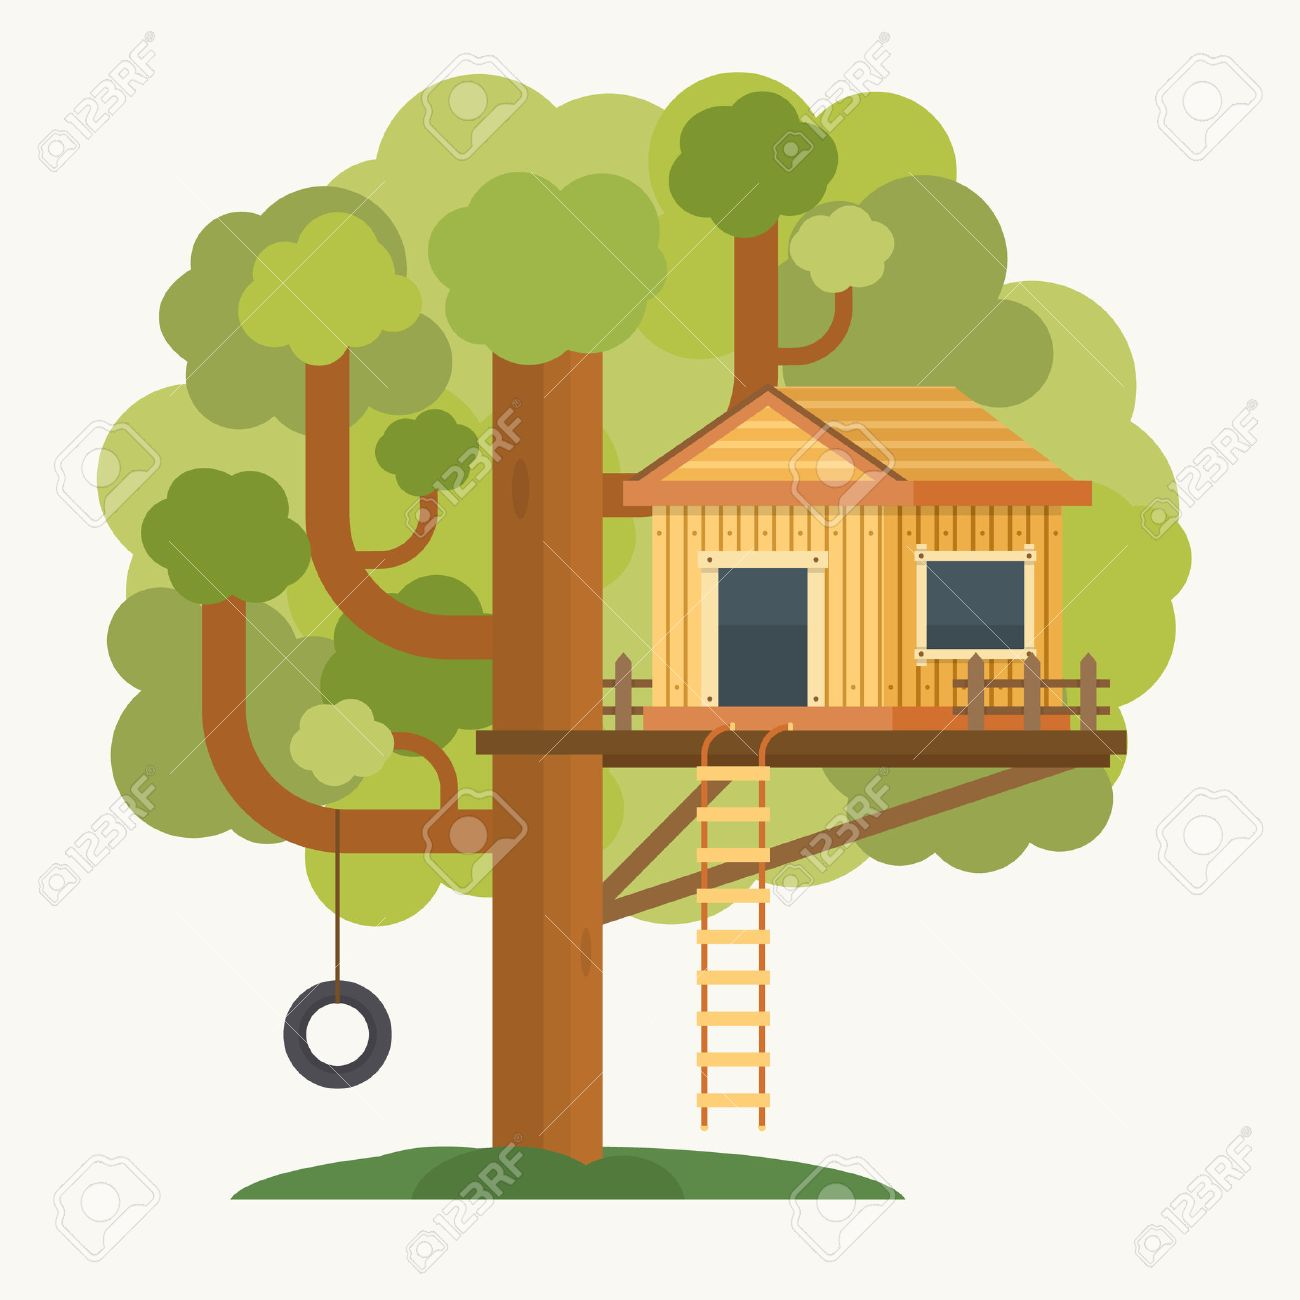 547 treehouse stock vector illustration and royalty free treehouse rh 123rf com Magic Tree House treehouse clipart free